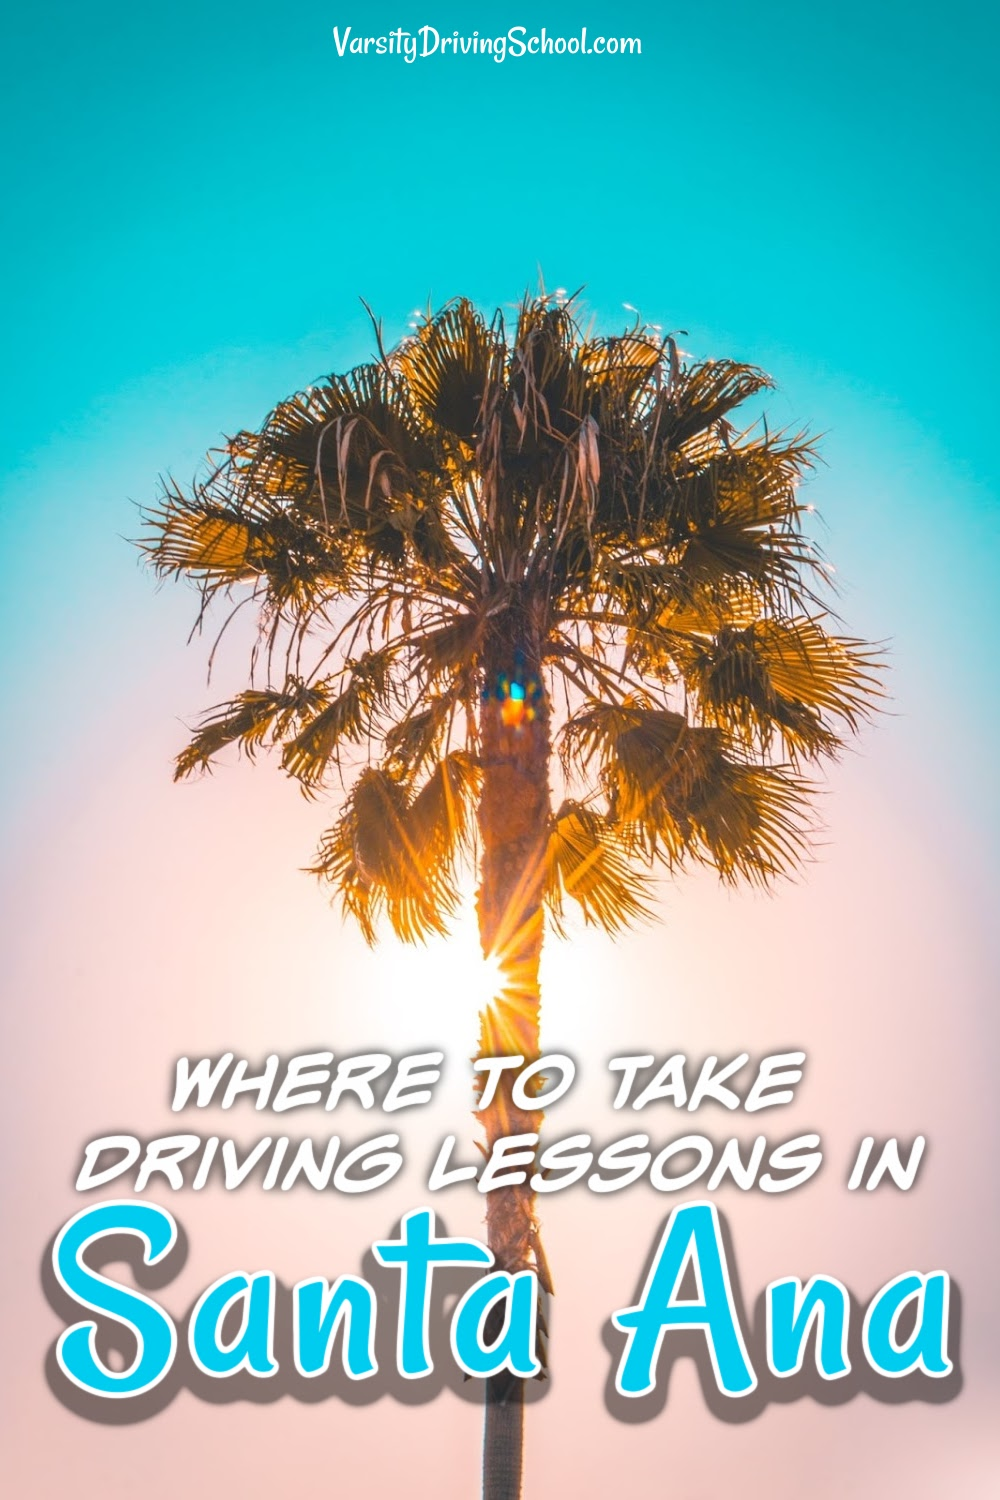 Knowing where to take driving lessons in Santa Ana can help prepare you for the busy roads ahead that require you to follow specific laws.